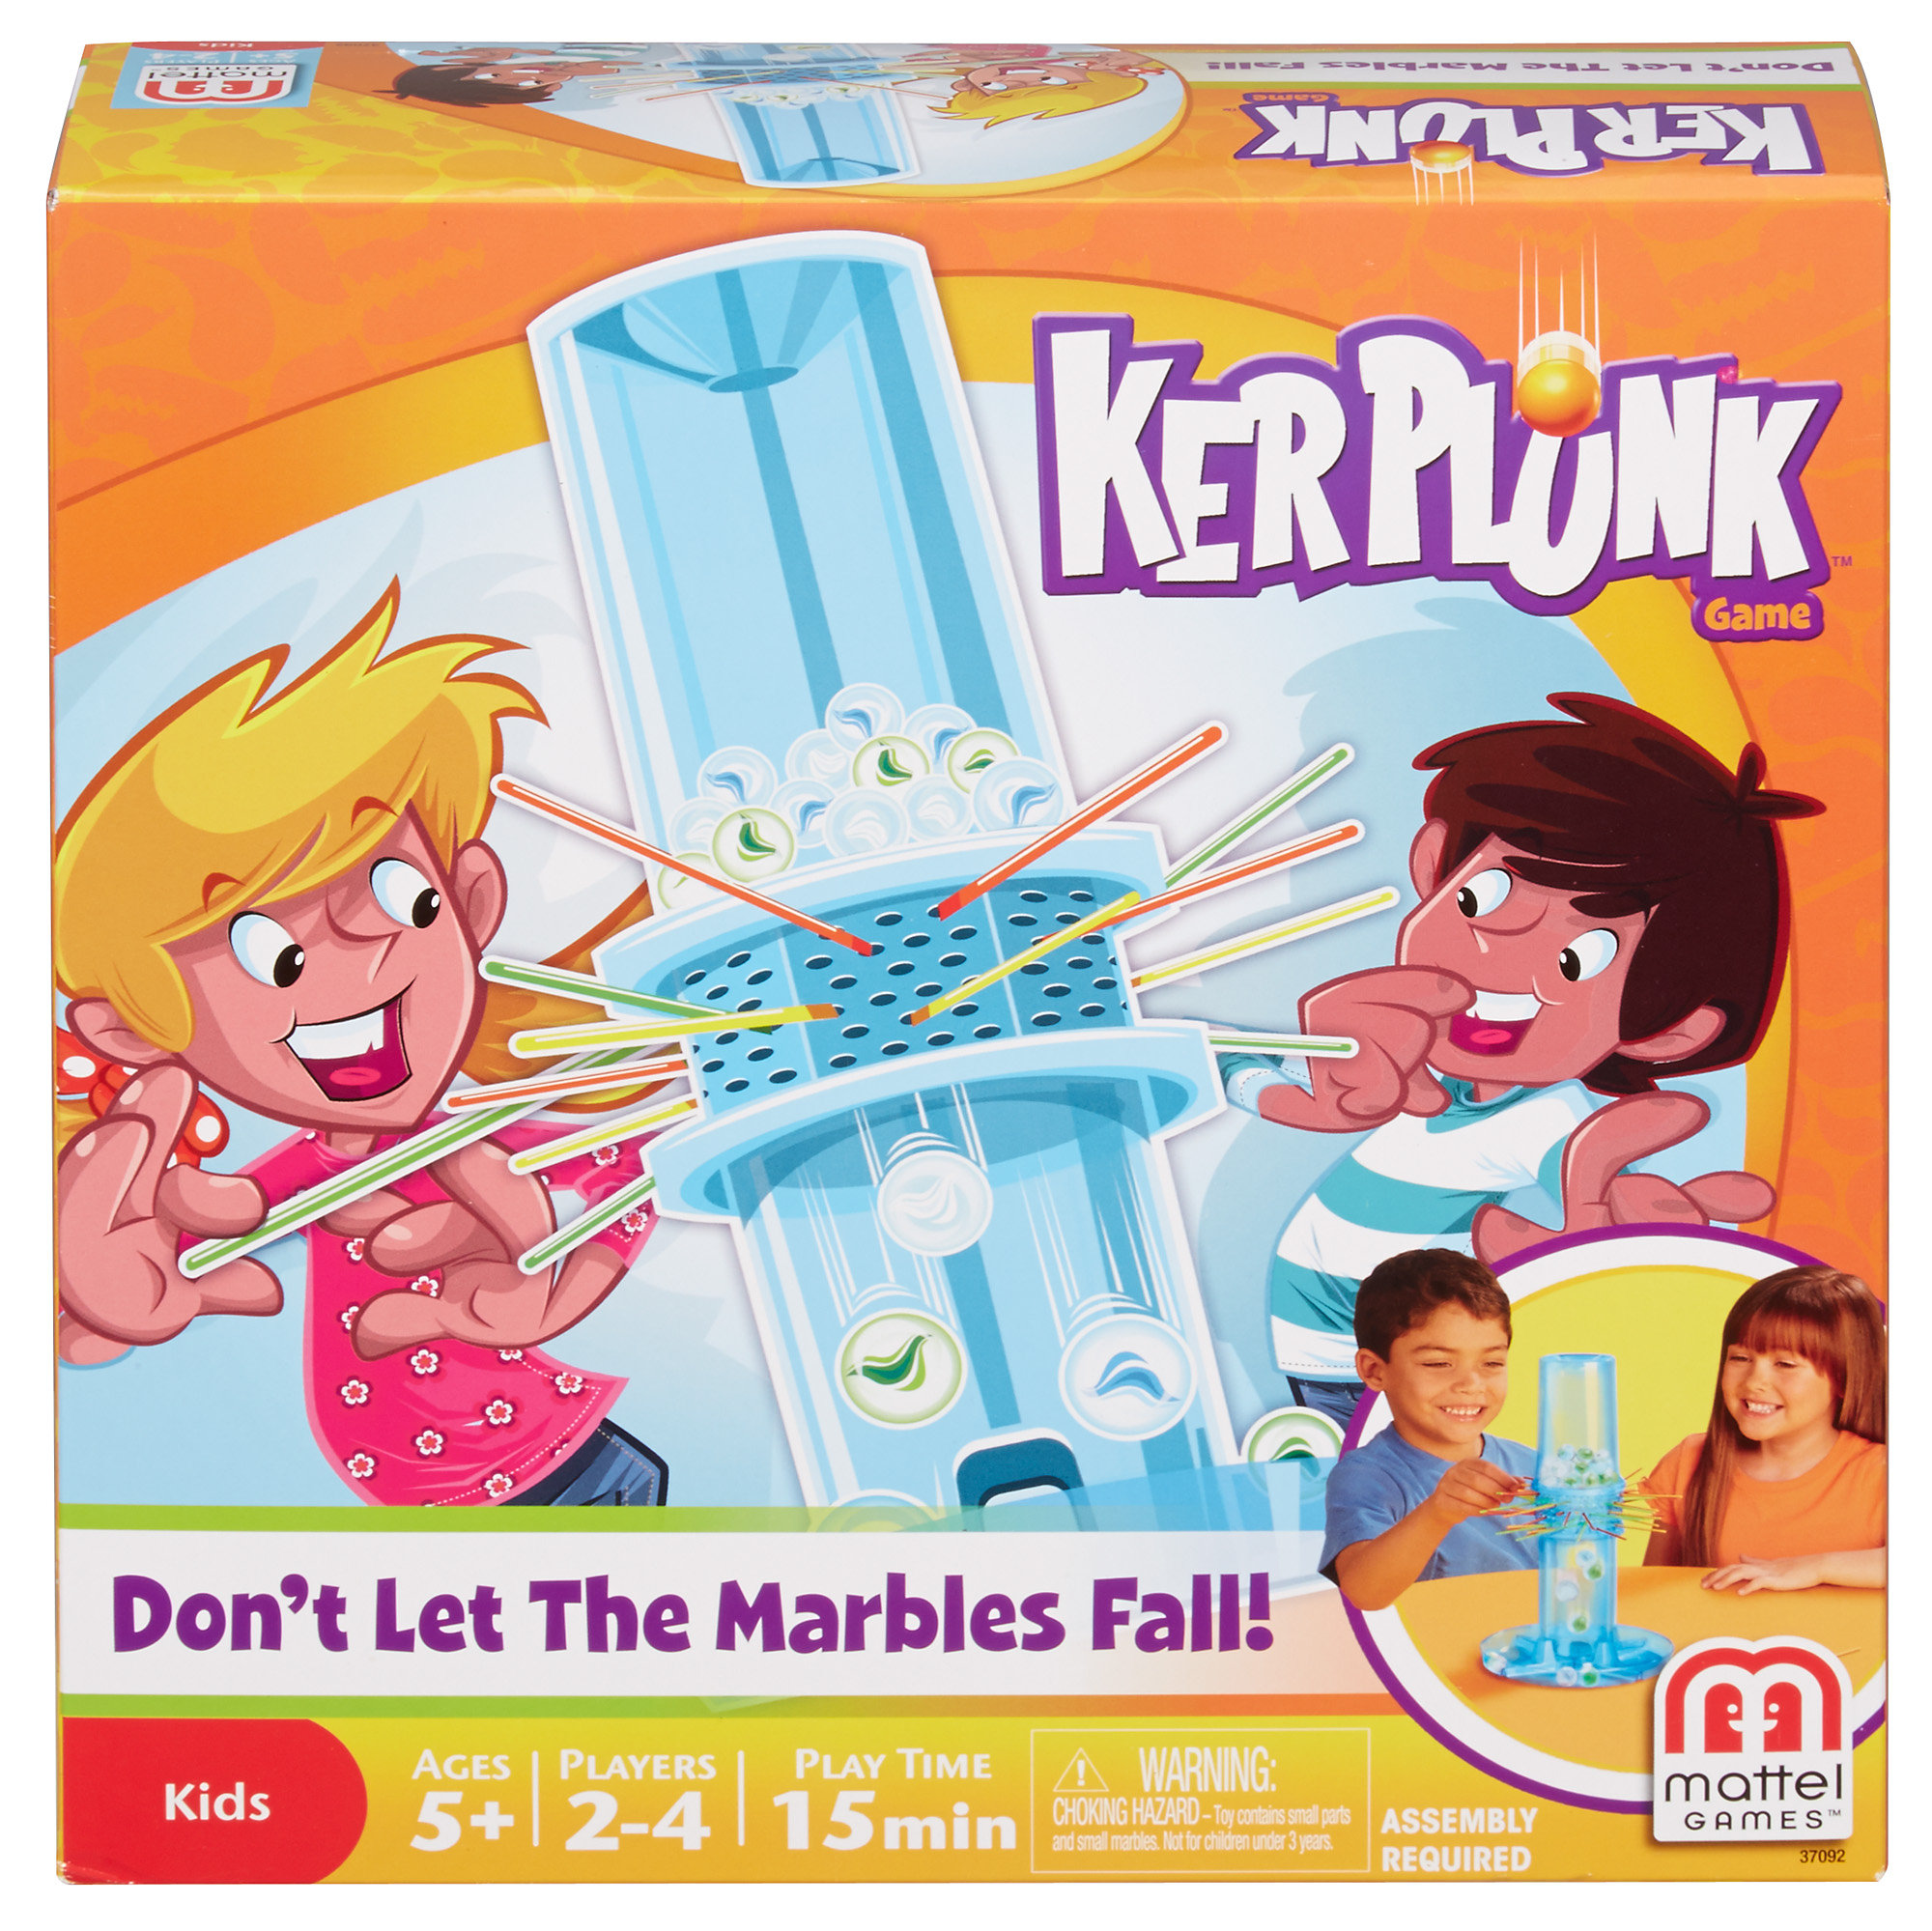 Ker Plunk! Game by Mattel